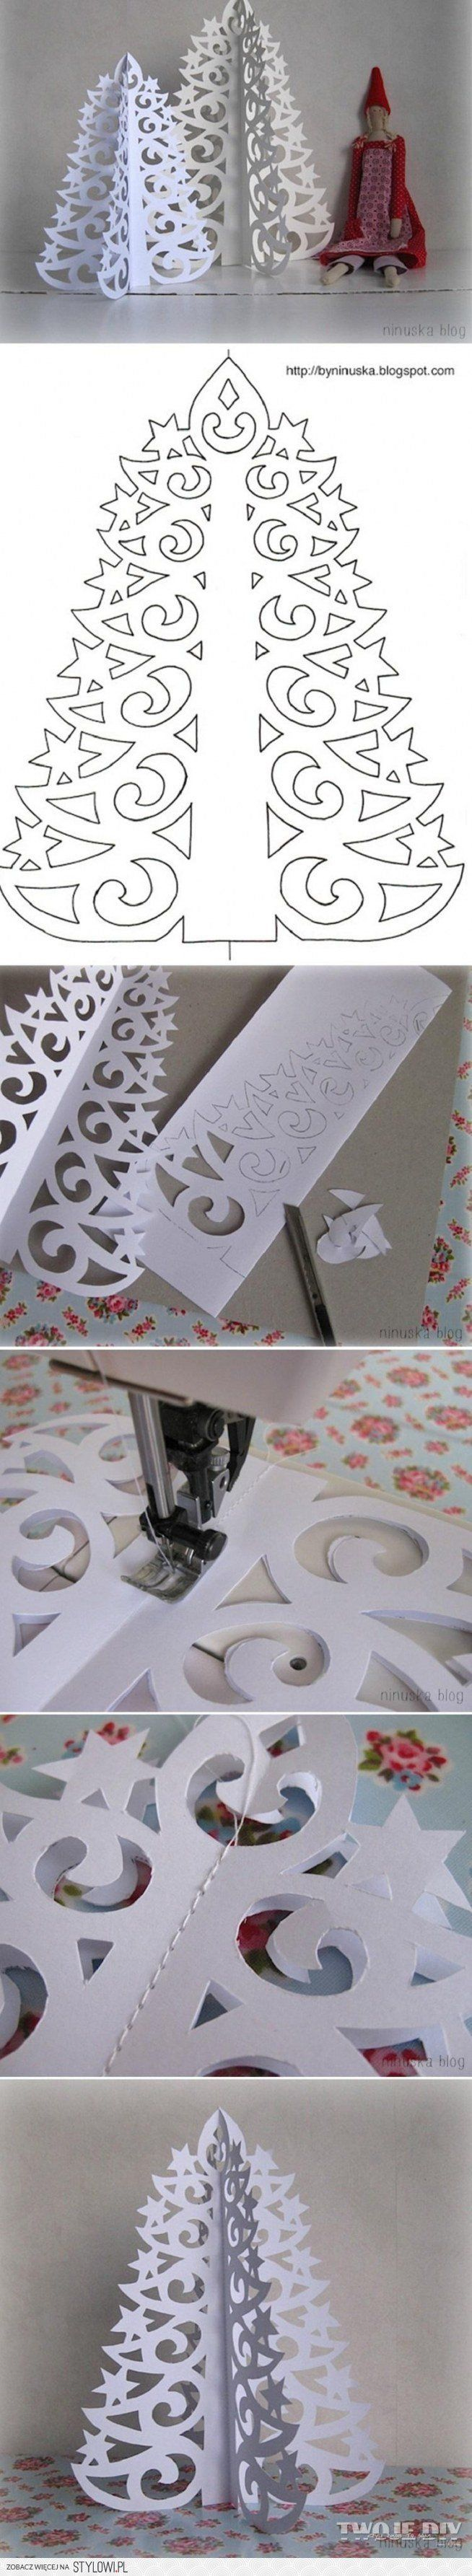 1223 best DIY this images on Pinterest